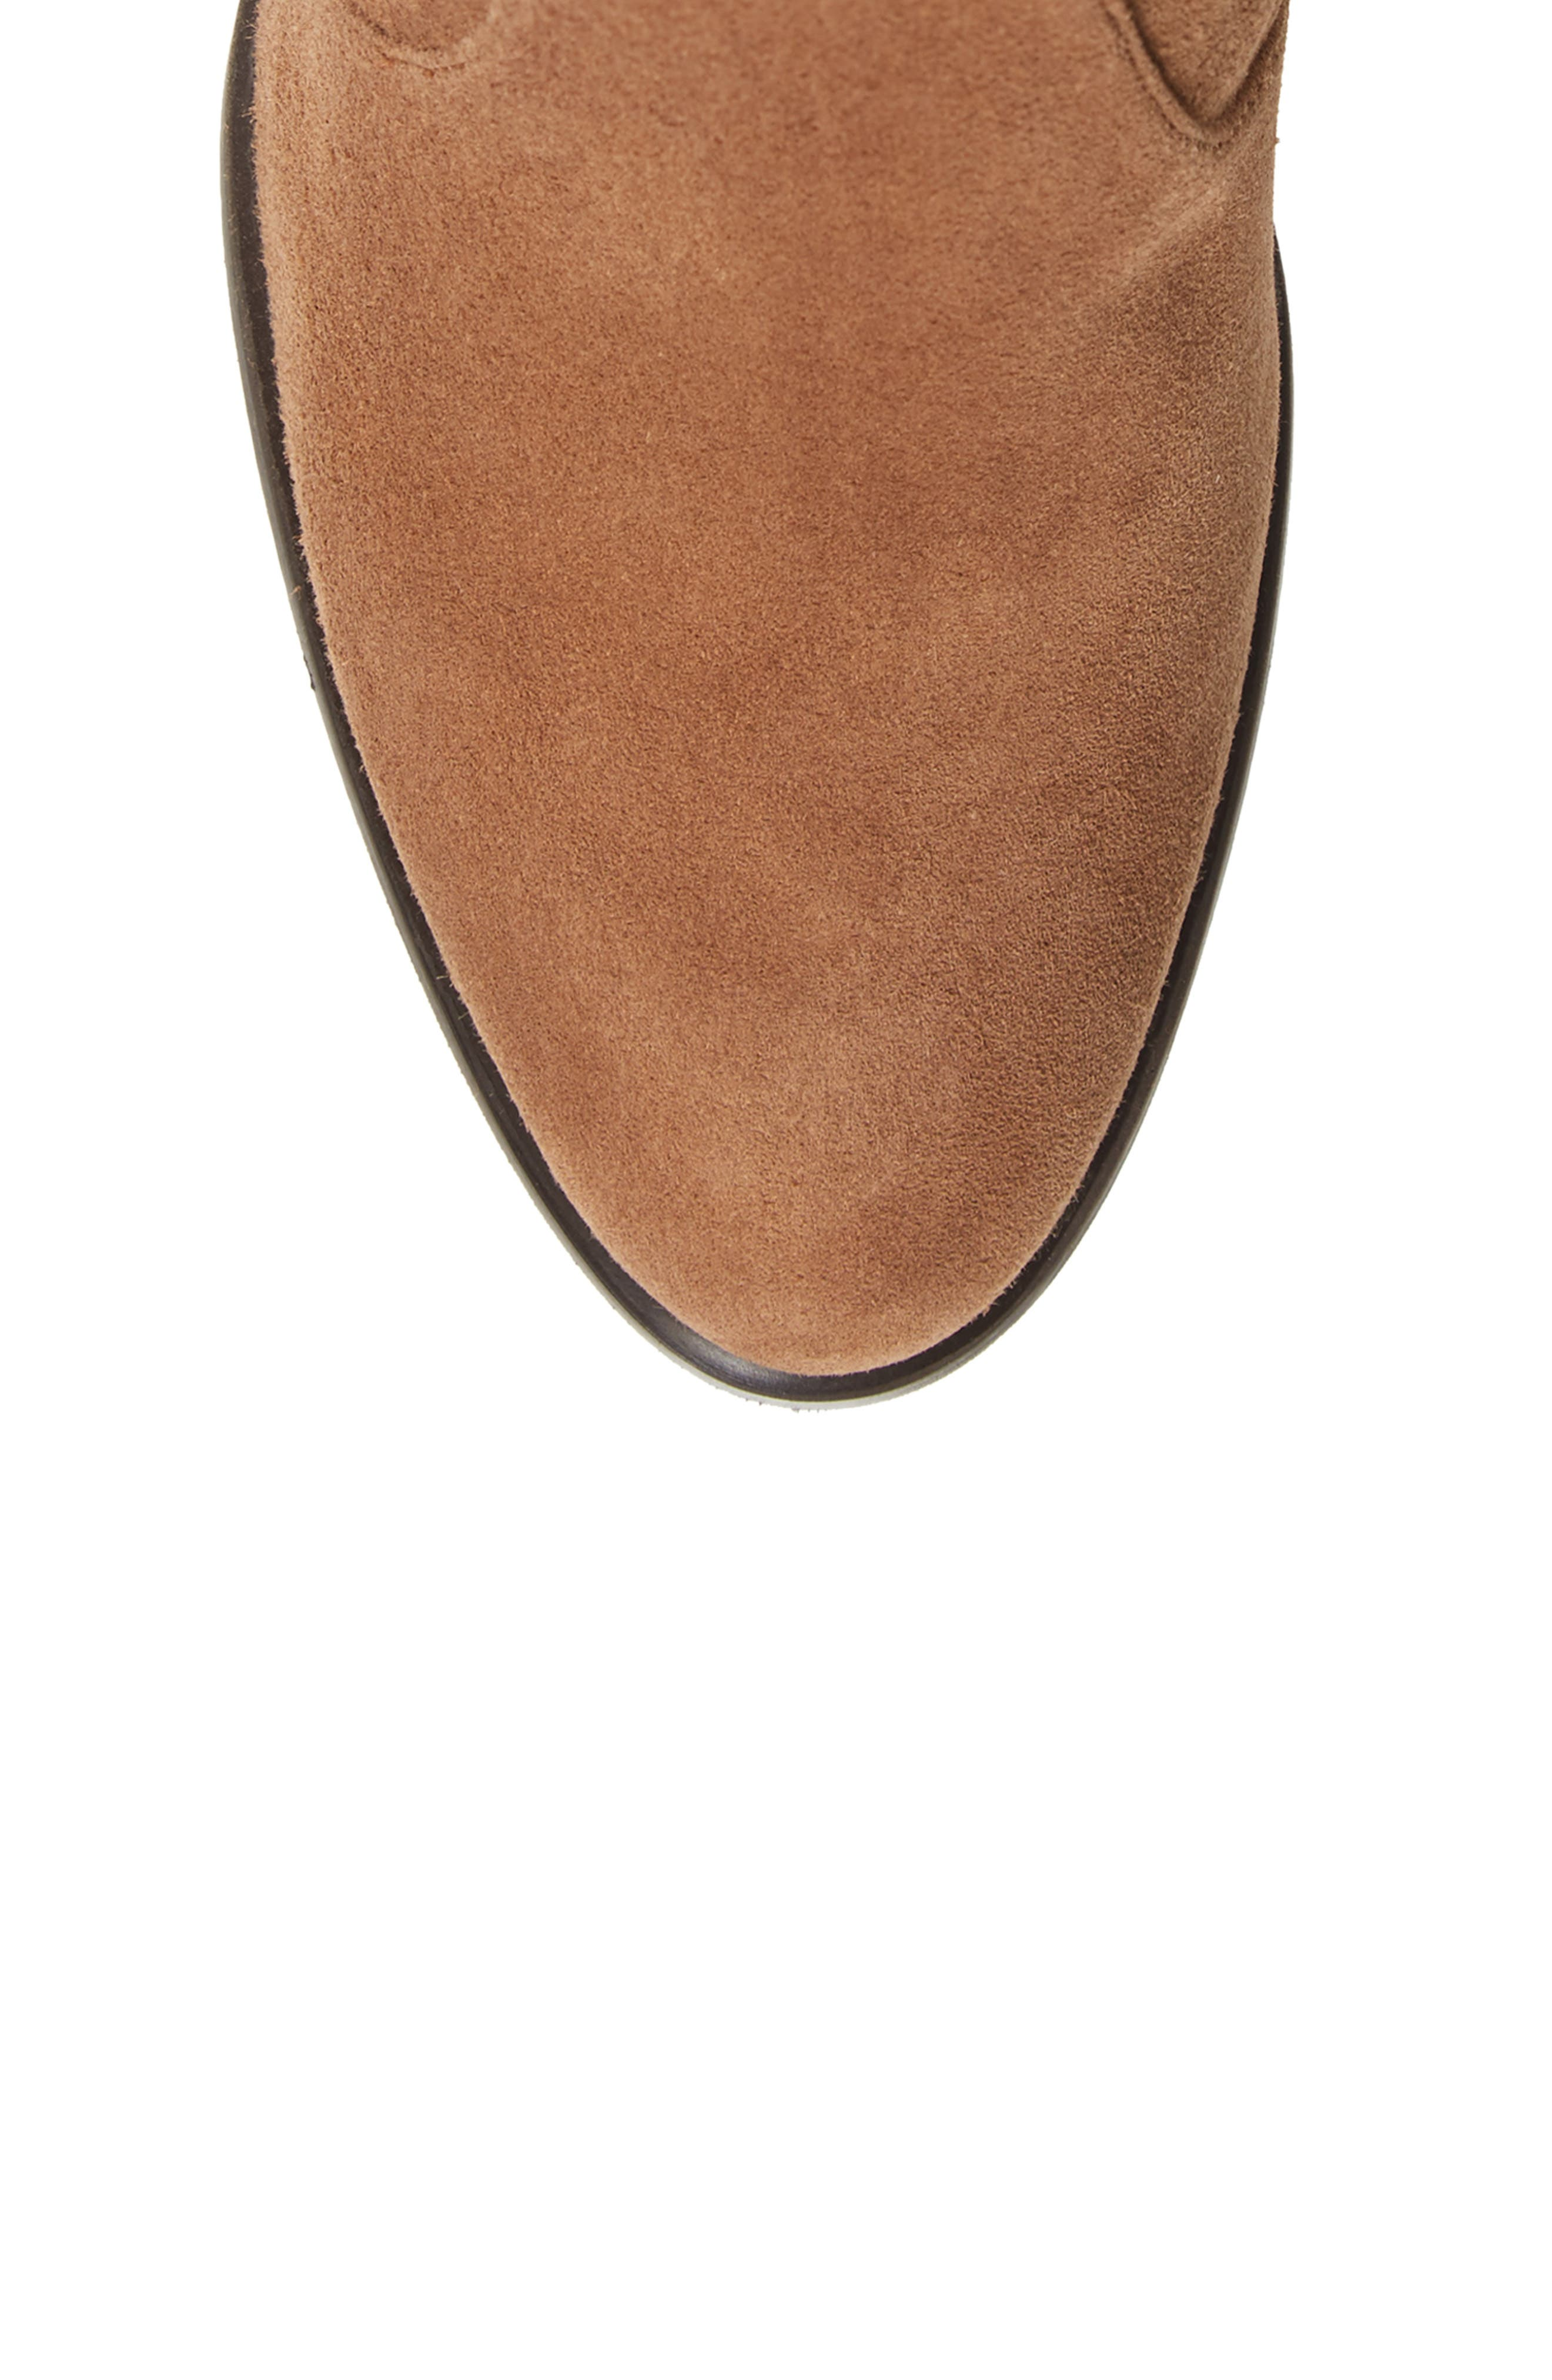 Hiline Over the Knee Boot,                             Alternate thumbnail 5, color,                             Nutmeg Suede